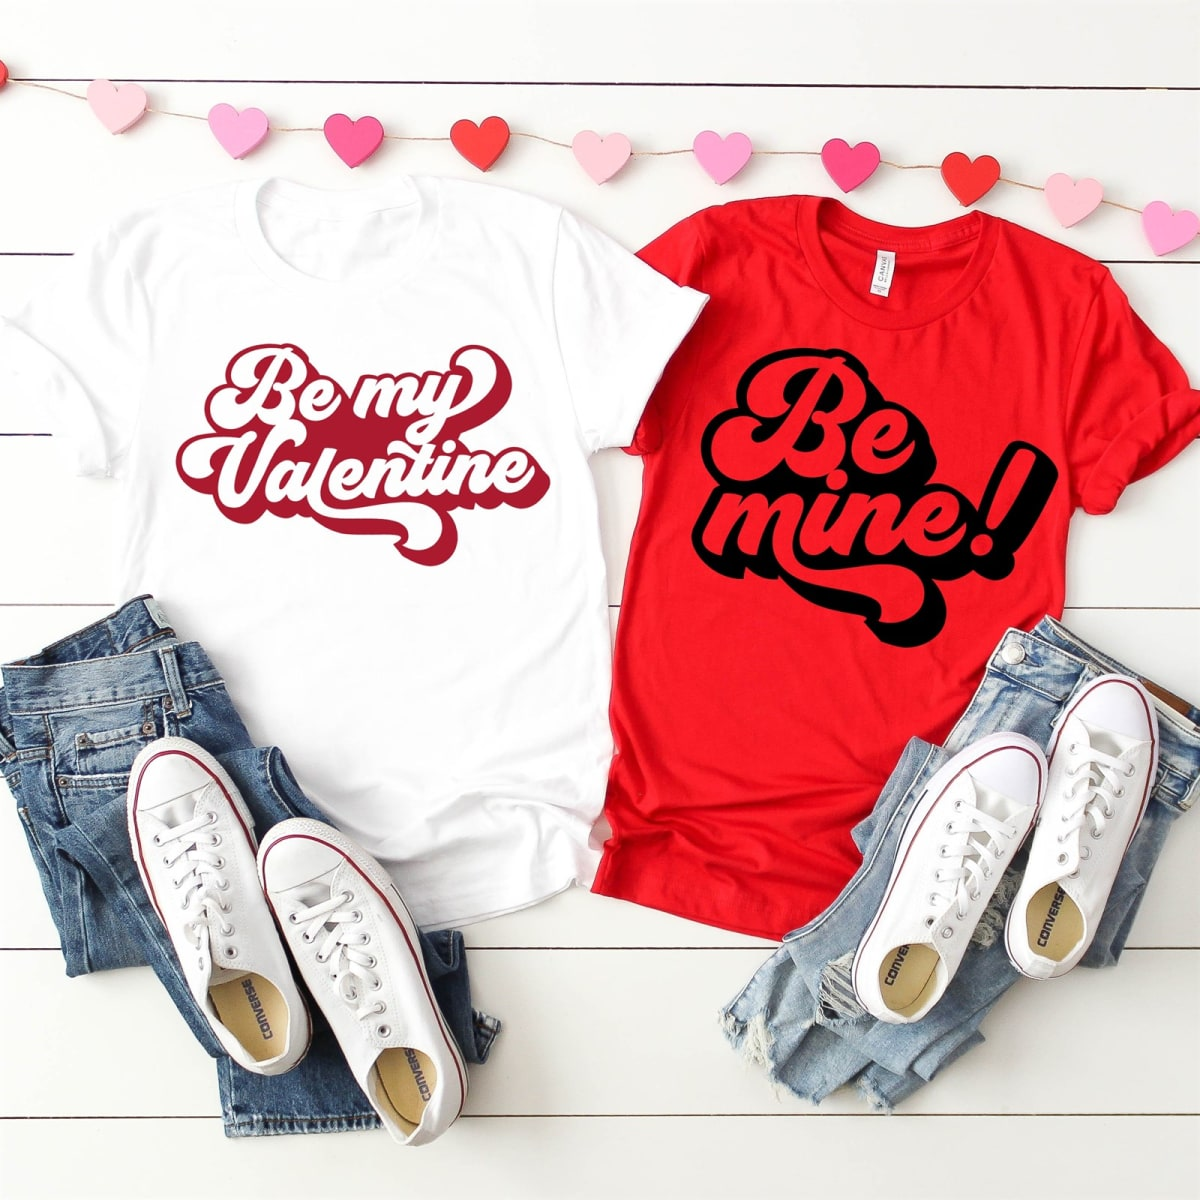 Groovy Valentine's Day Tees